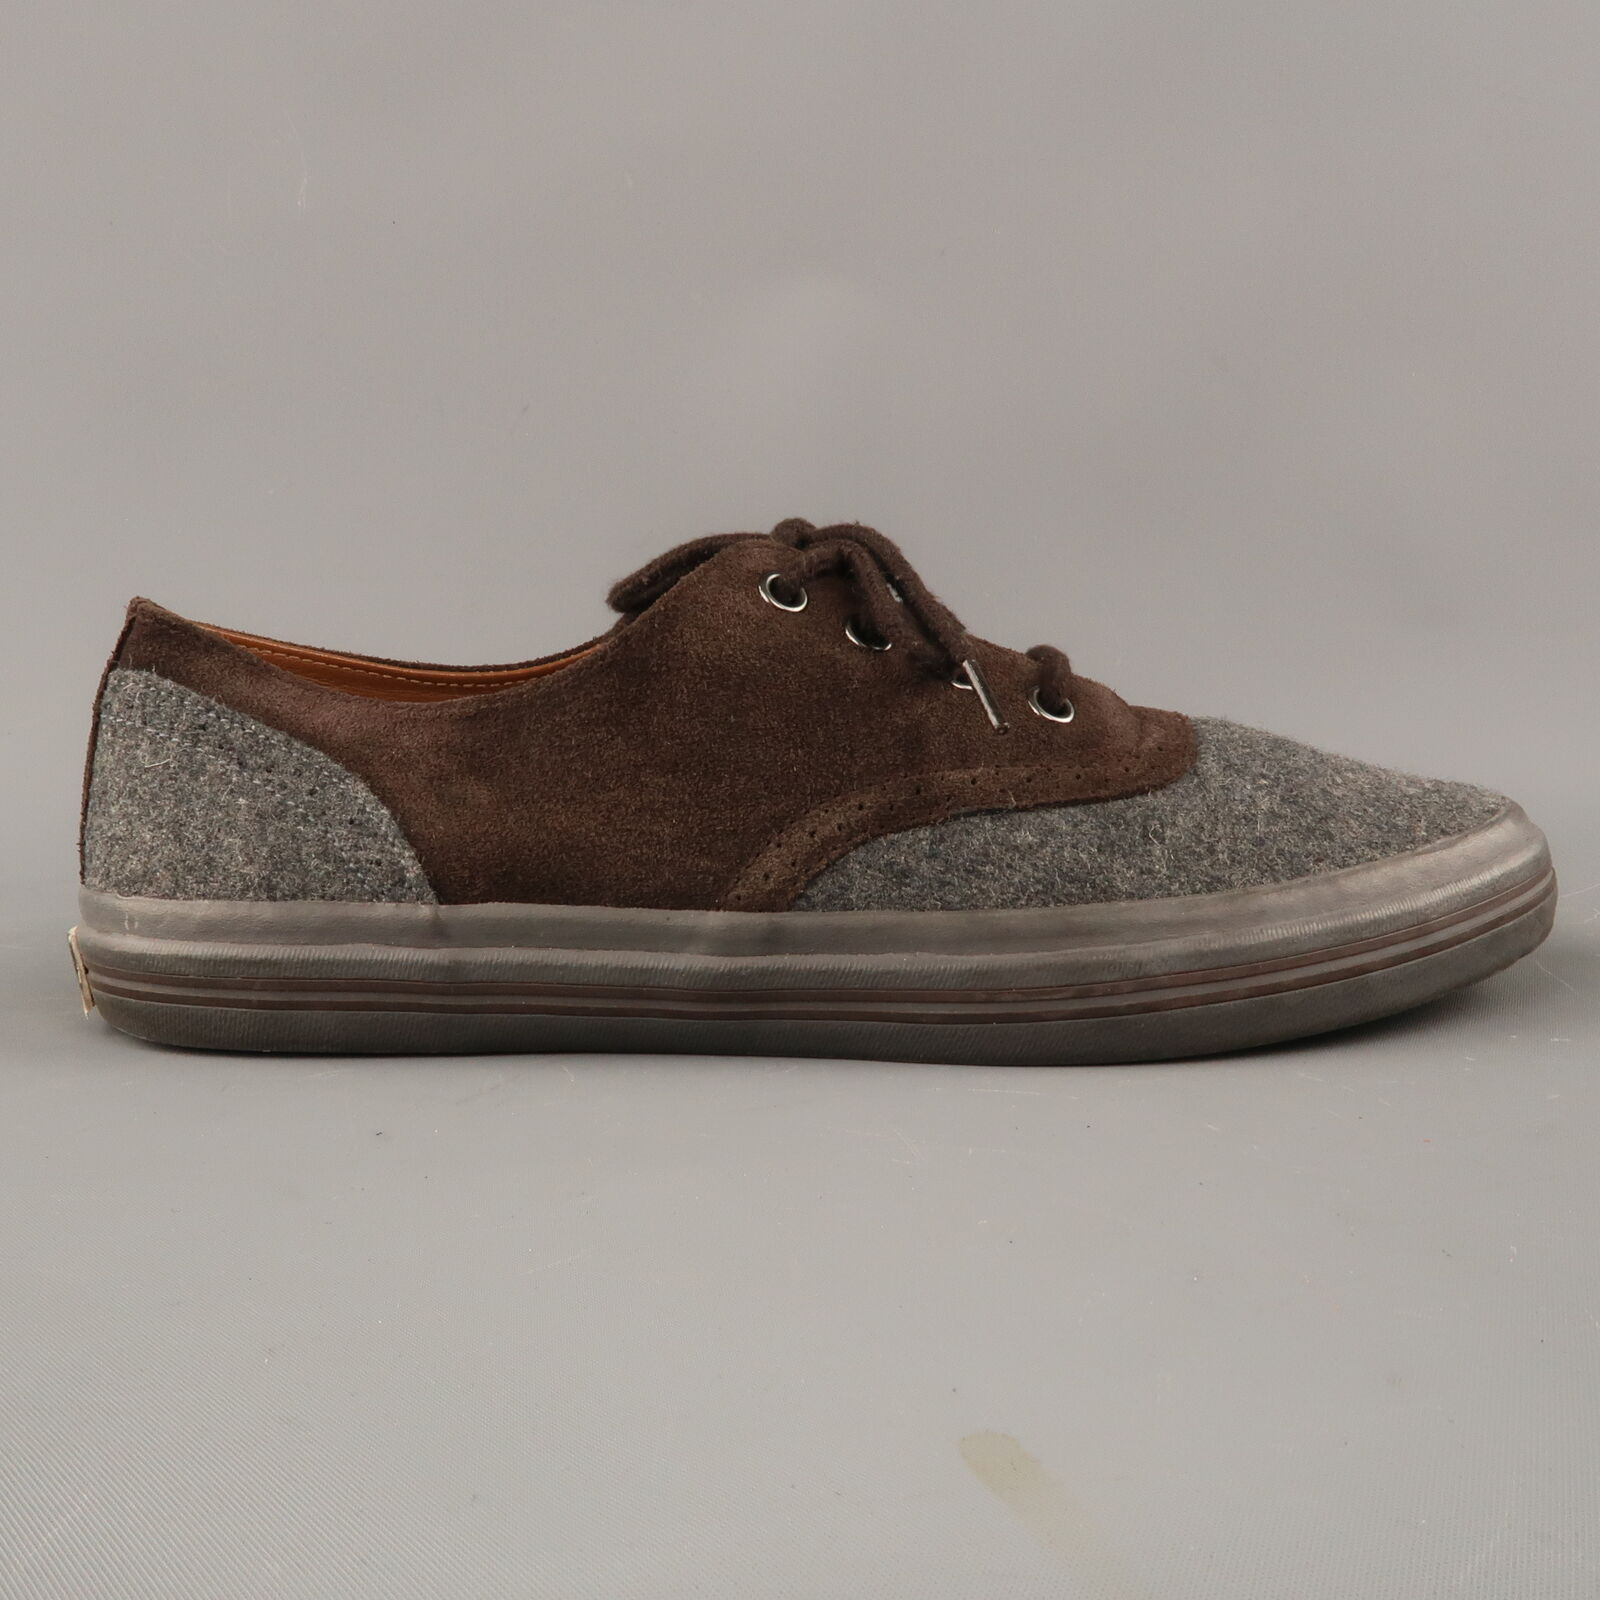 RALPH LAUREN Size 8.5 Grey & Brown Wool & Suede Lace Up Sneakers